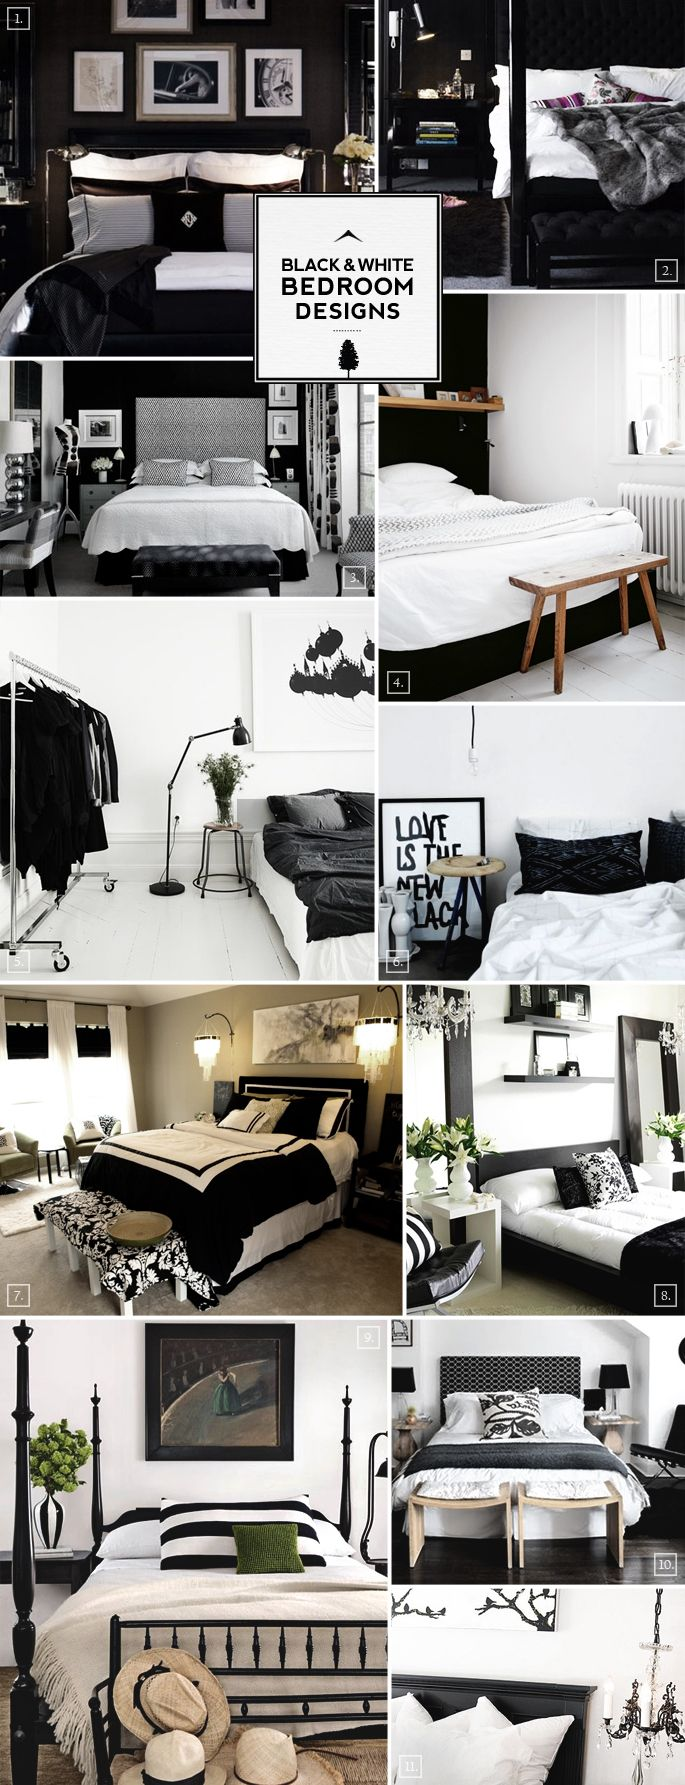 Black and White Bedroom Designs and Decor Ideas | Home Tree Atlas